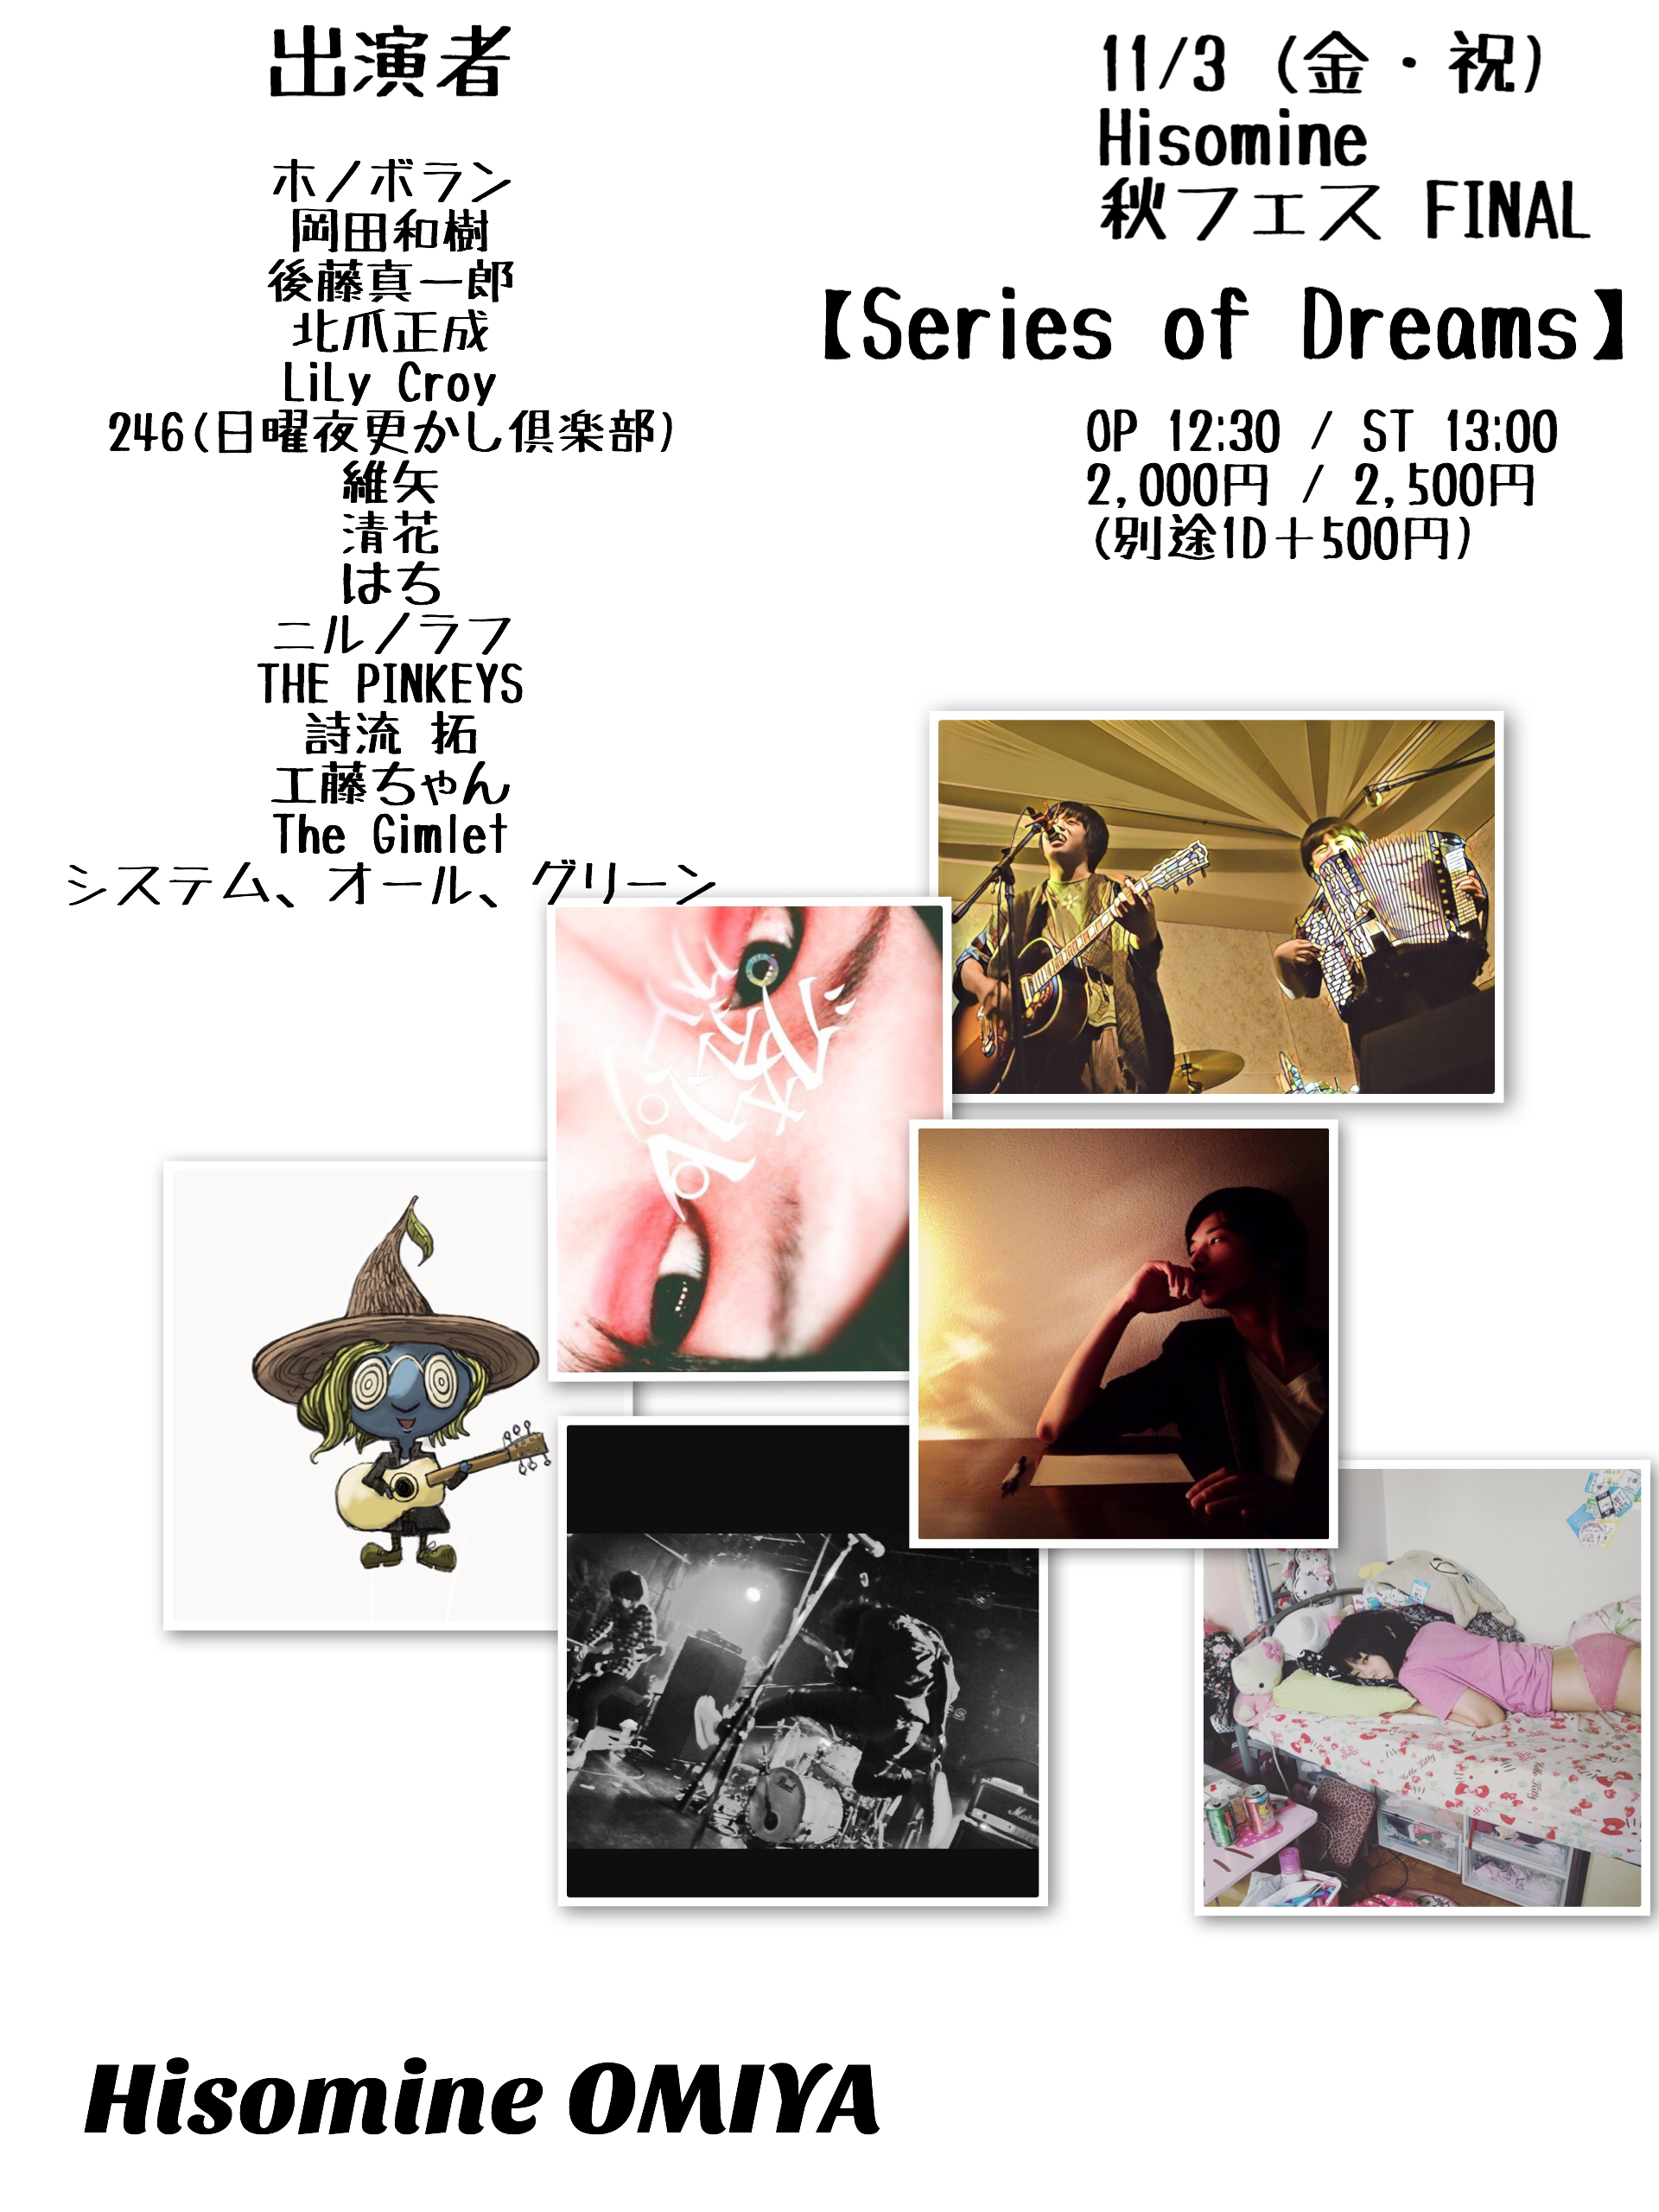 Hisomine 秋フェス Final ! 【Series of Dreams】